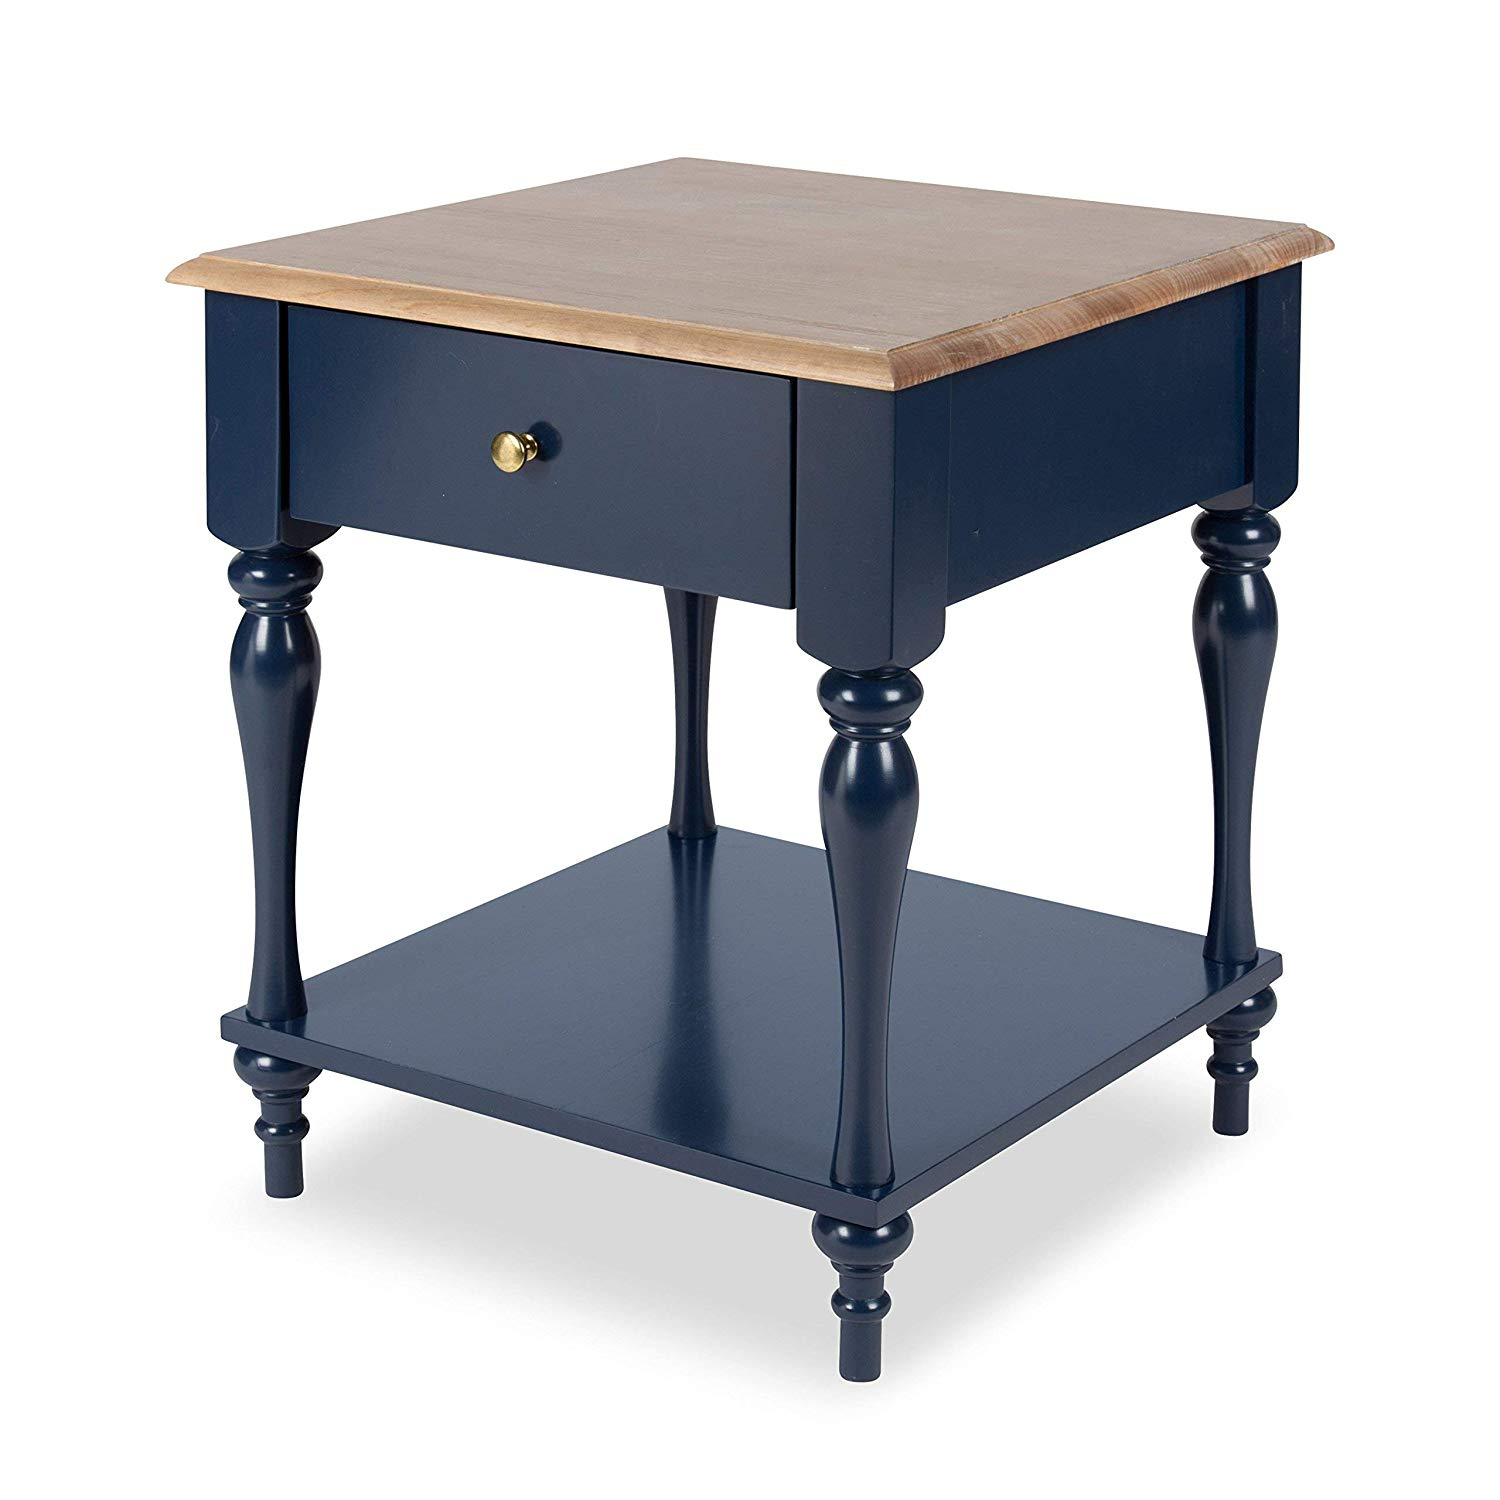 kate and laurel sophia rustic wood top nightstand side table with navy blue end drawer shelf home kitchen legends furniture manchester entertainment center two tone tables western